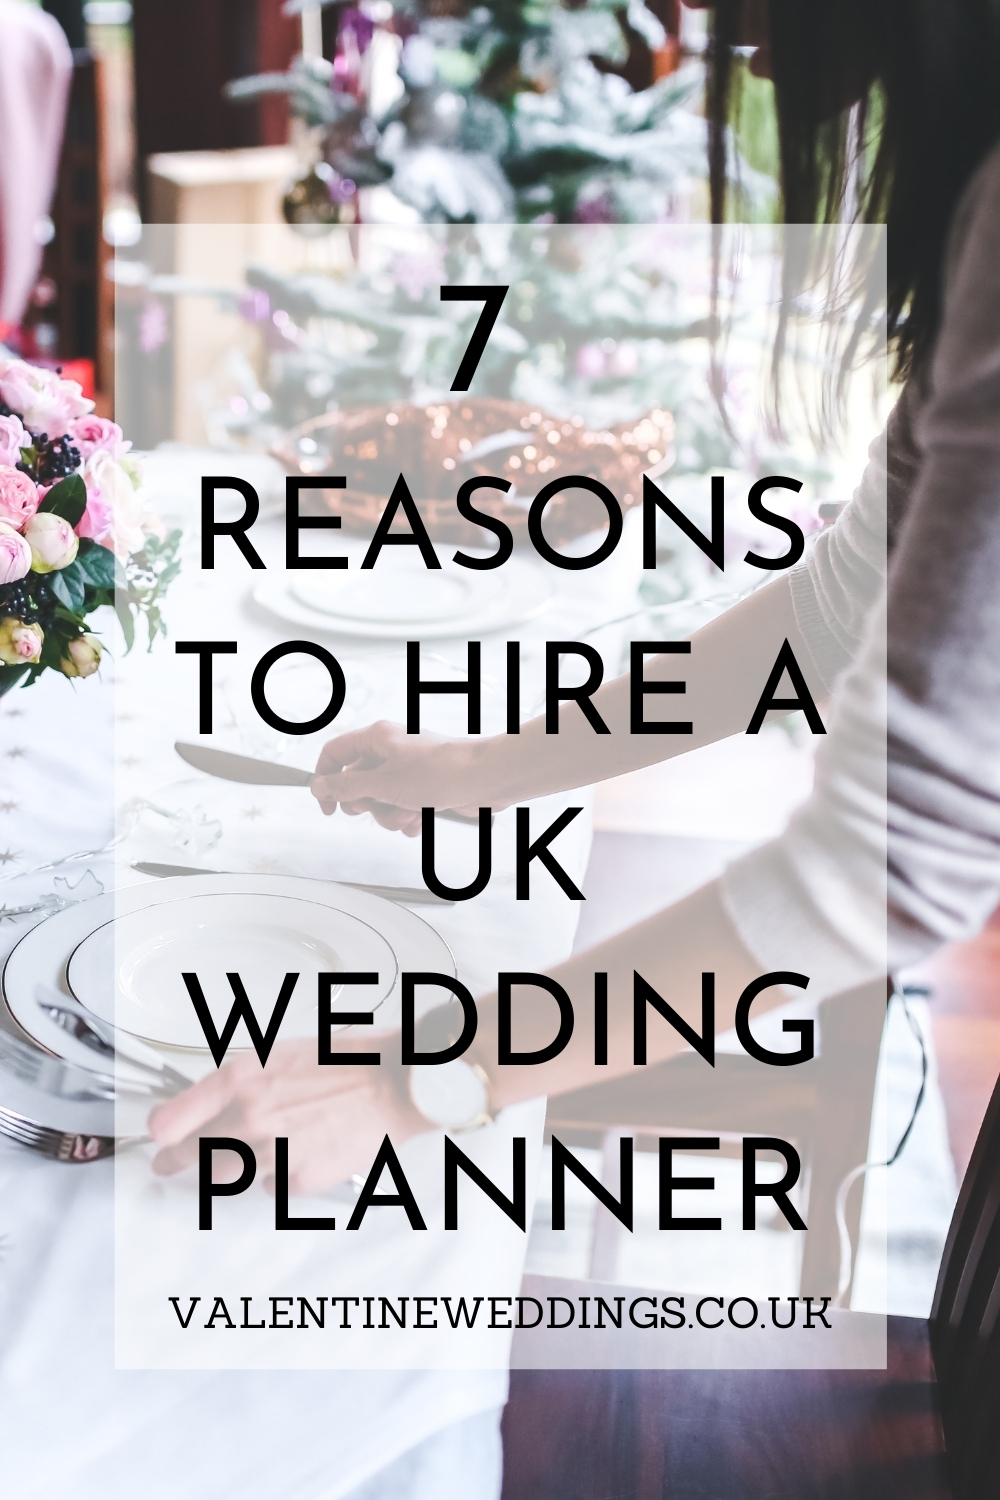 7 Reasons To Hire A UK Wedding Planner